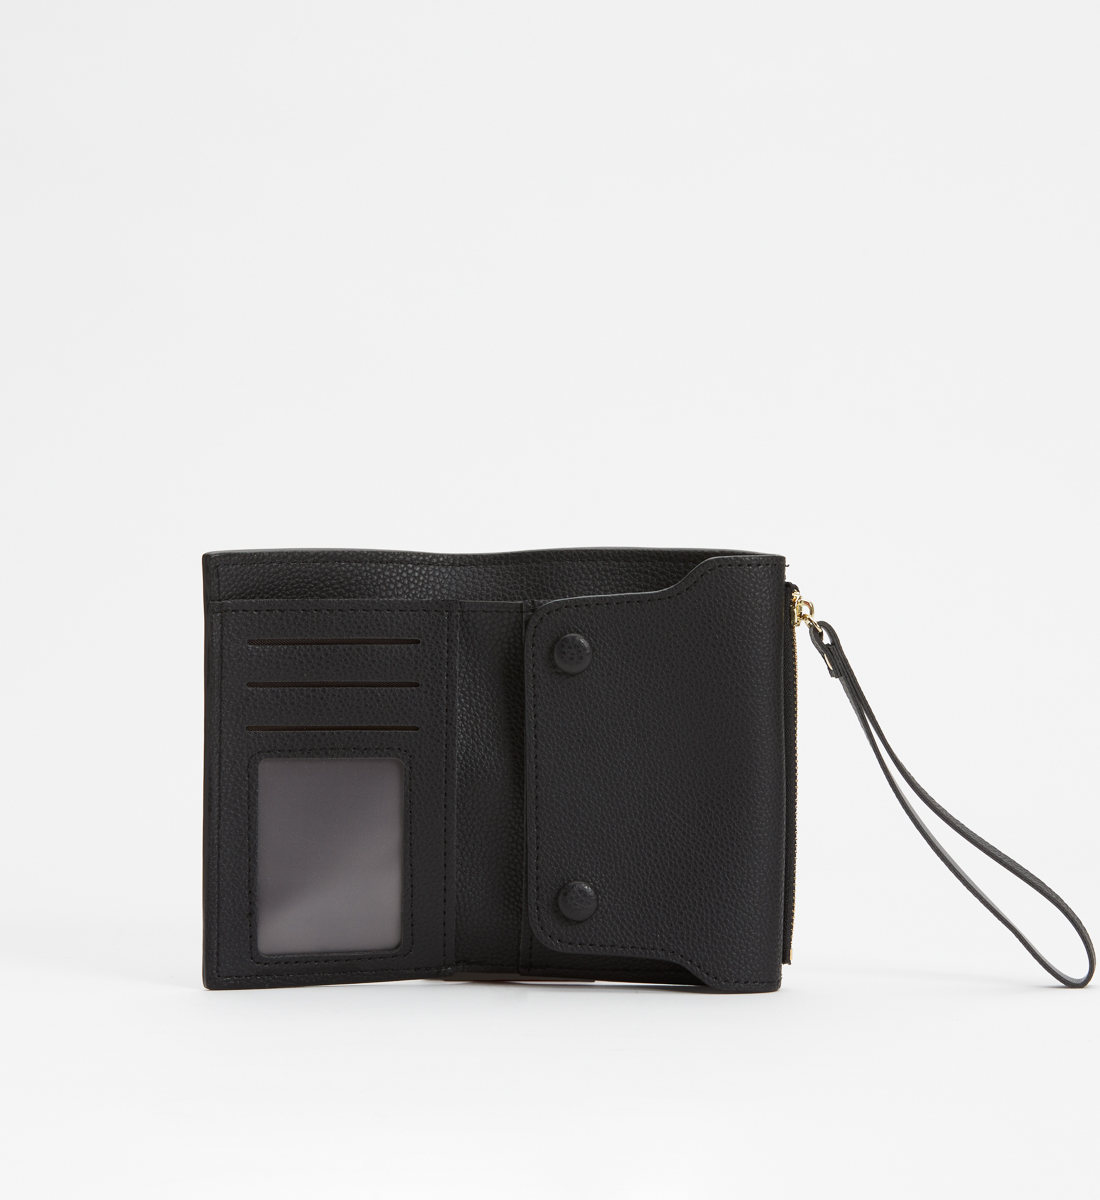 Small Flap Wristlet Wallet,Black Alt Image 1